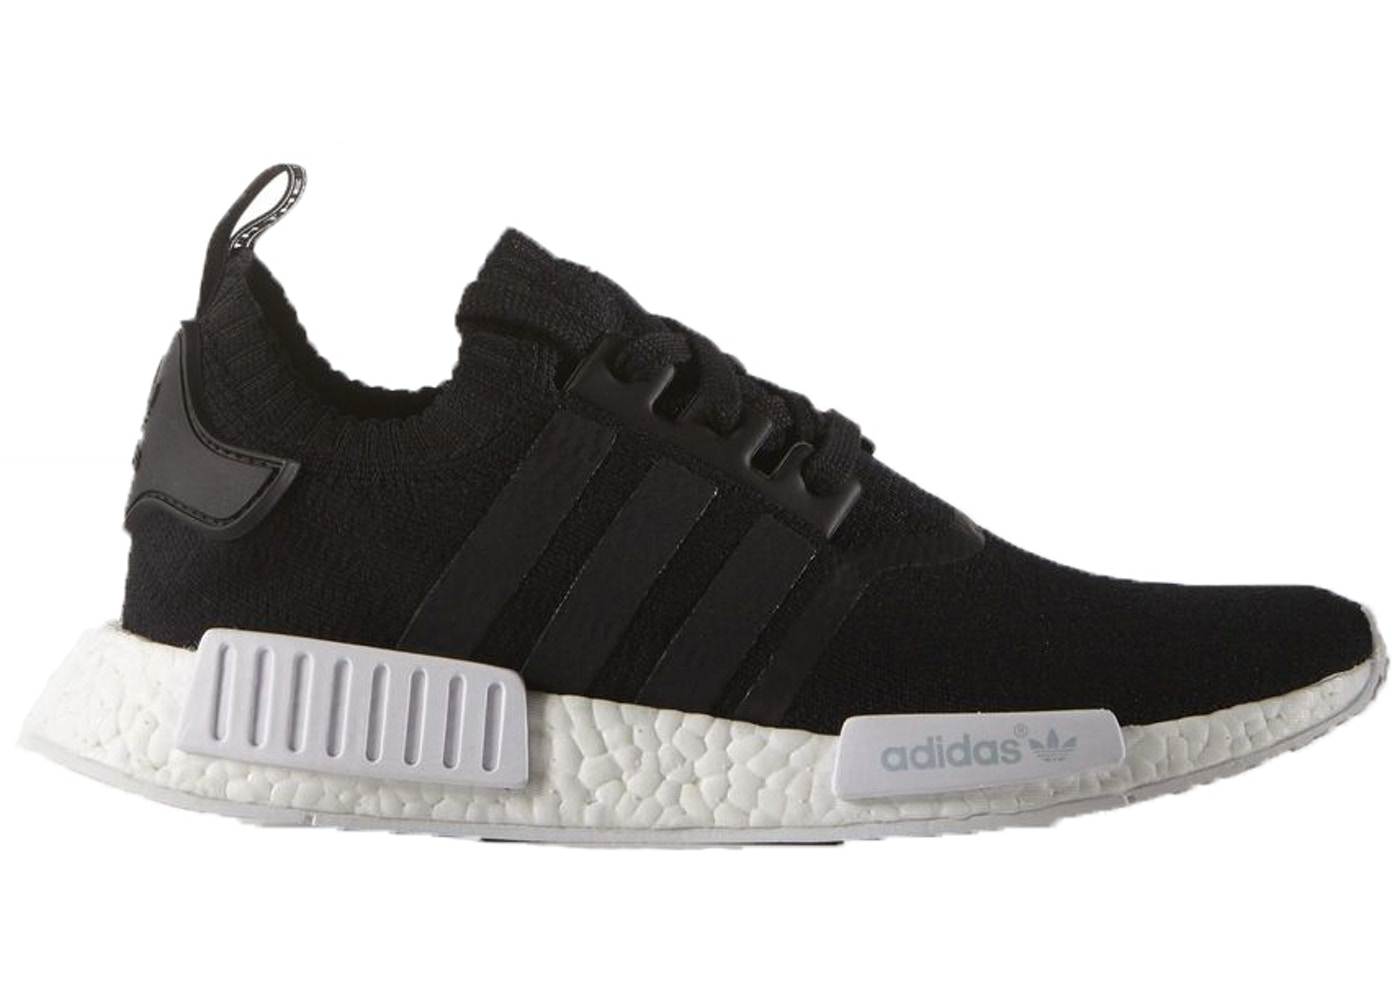 new styles 83a01 78aa7 adidas NMD R1 Primeknit All Black